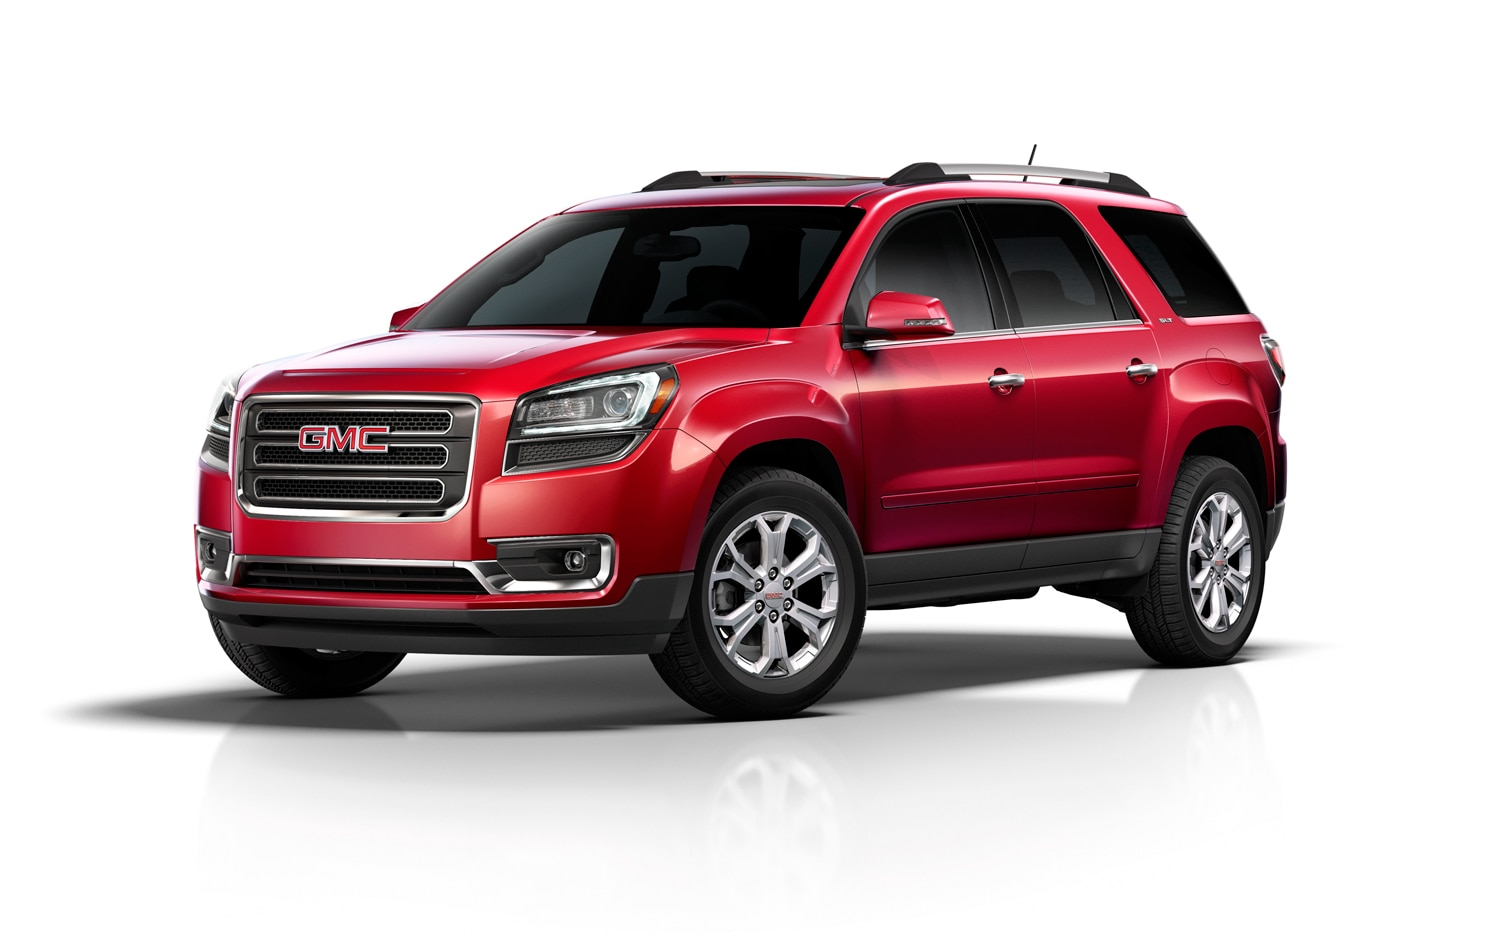 Gmc Acadia Towing Capacity >> 2013 GMC Acadia First Look - 2012 Chicago Auto Show - Motor Trend